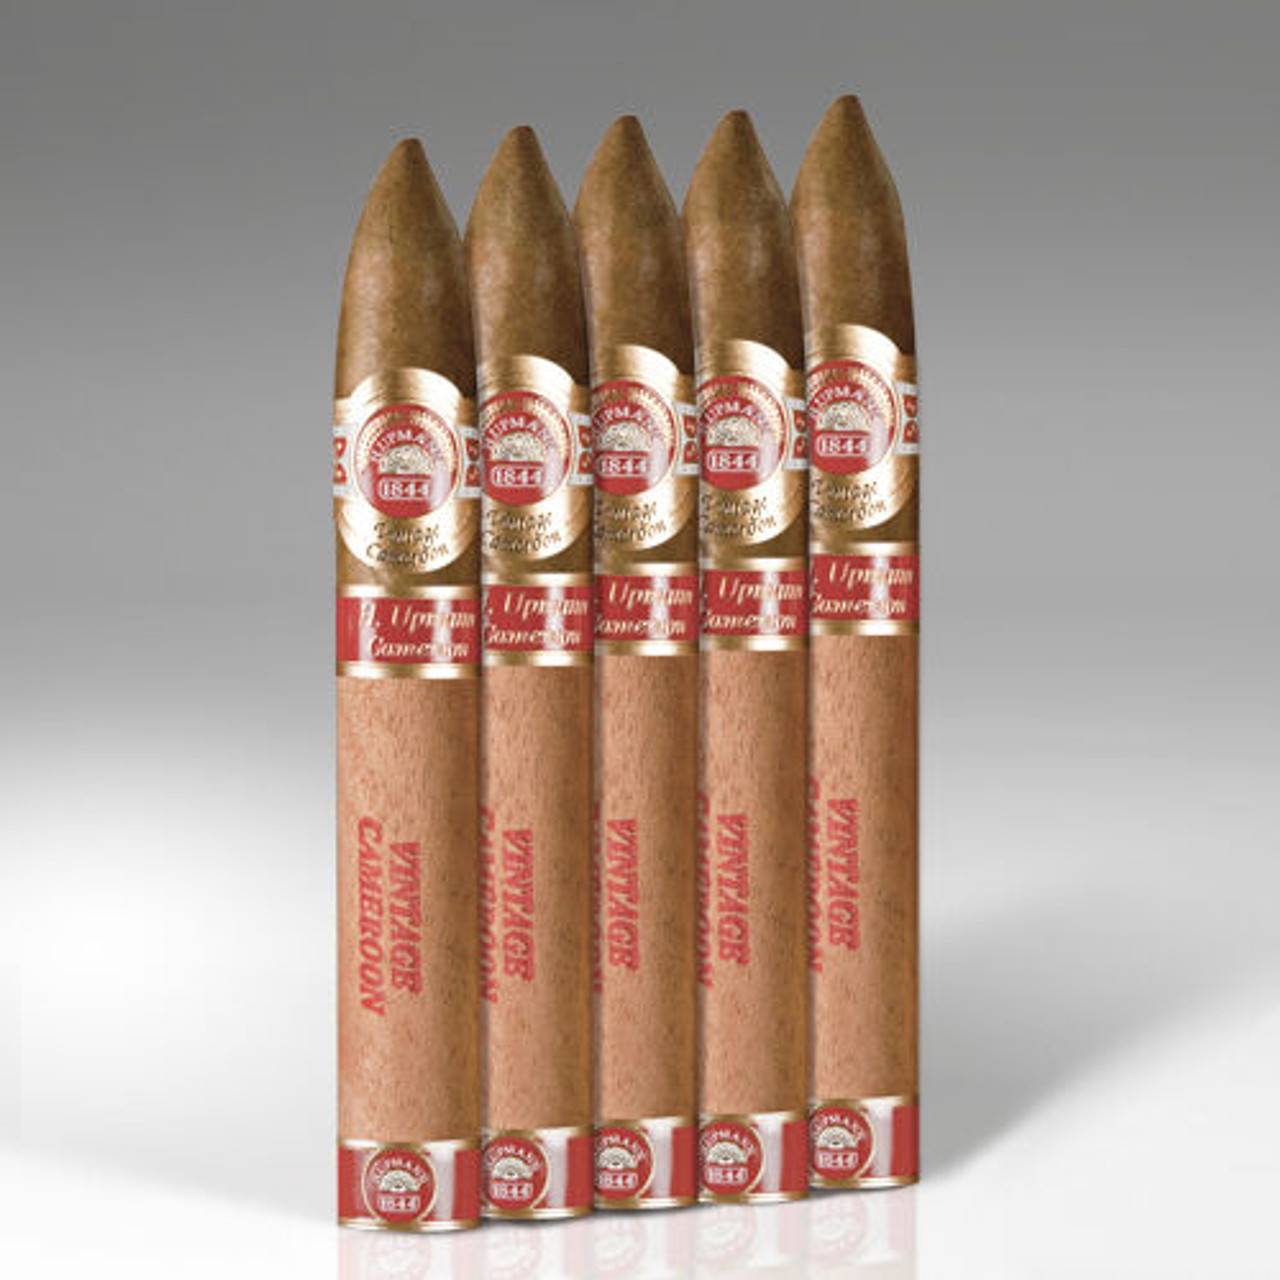 H. Upmann Vintage Cameroon Belicoso Cigars - 6.12 x 52 (Pack of 5)